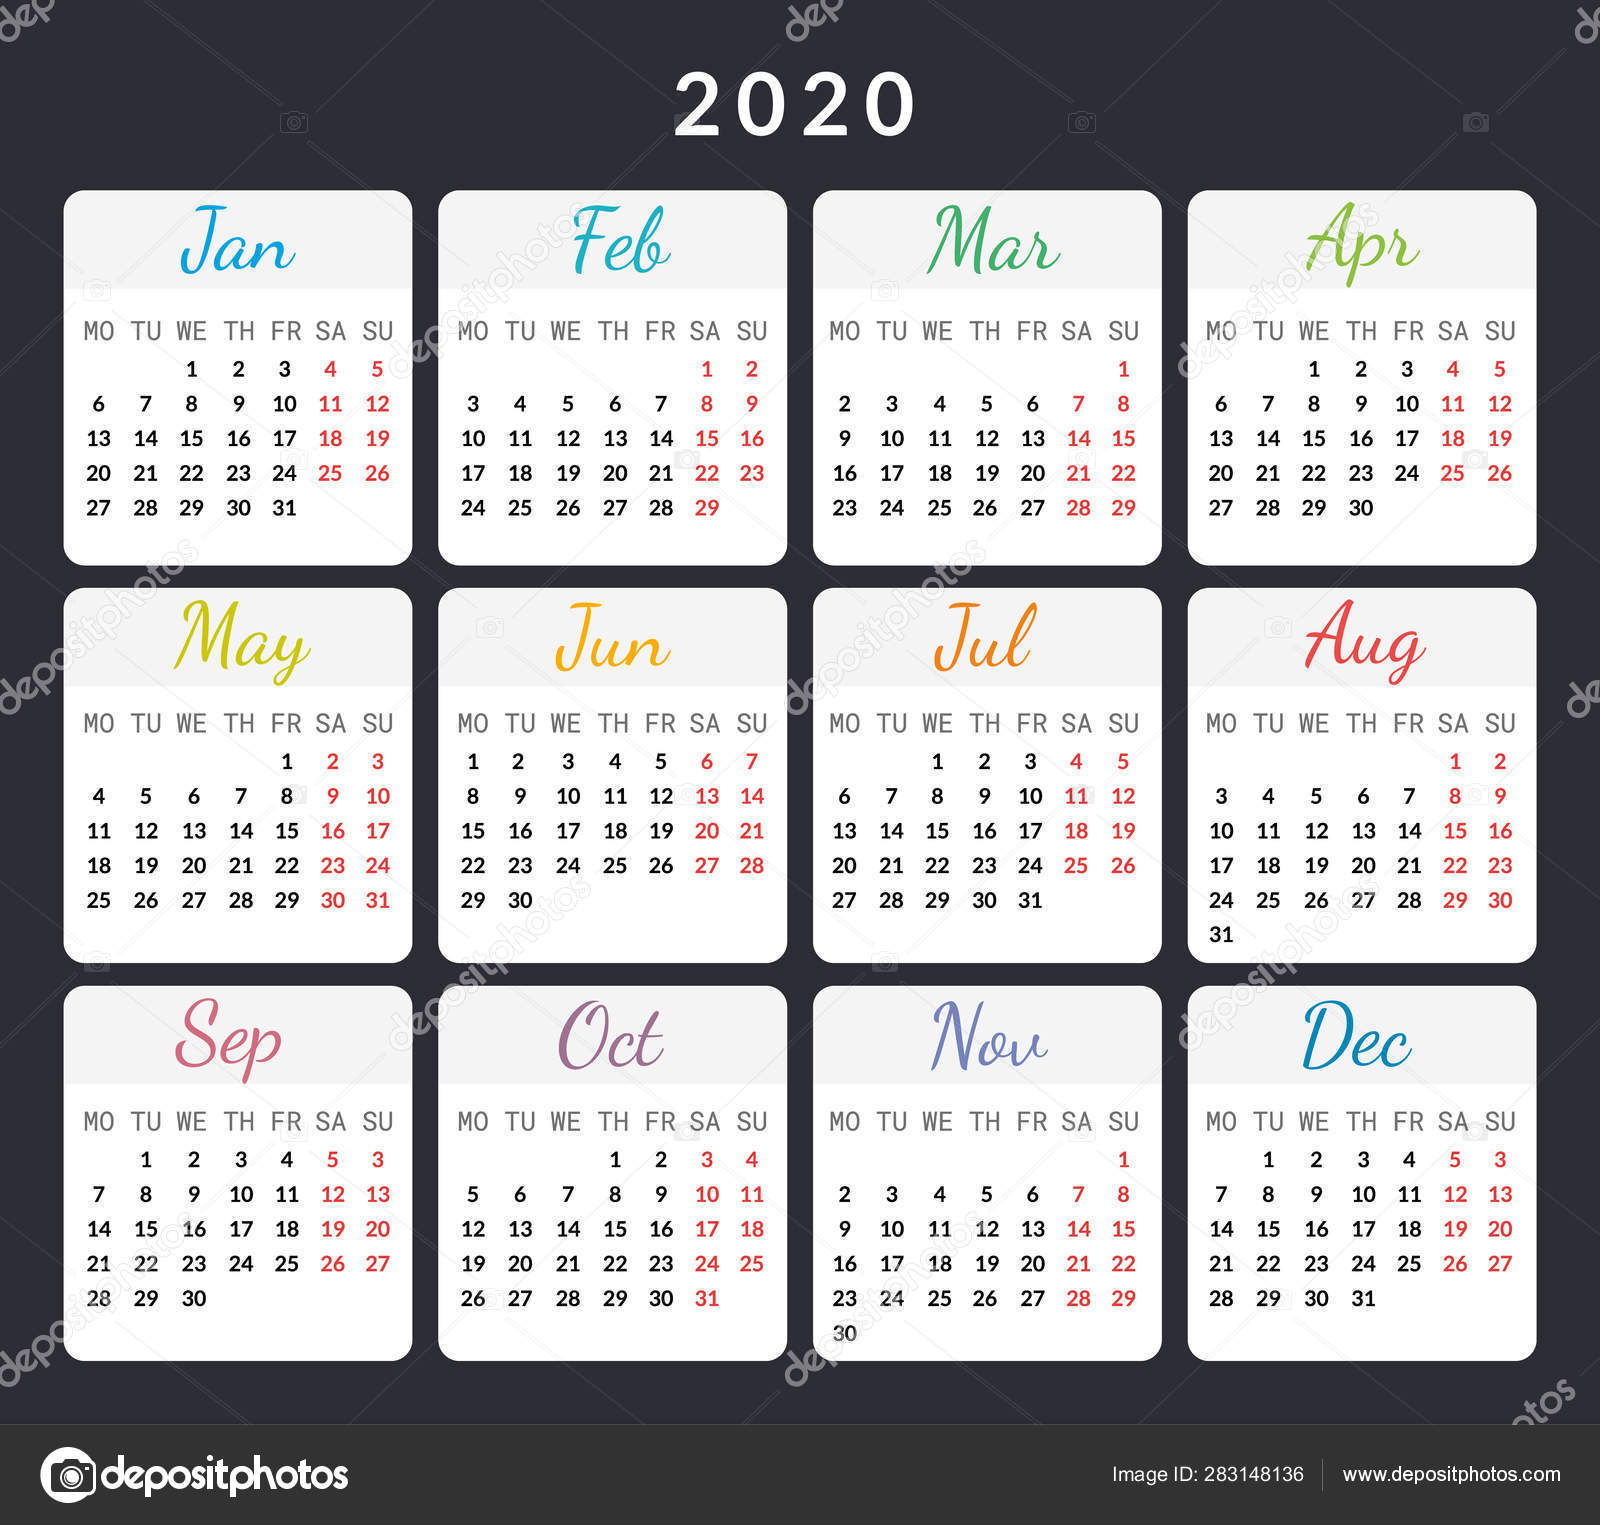 Calendar With Special Days 2020 | Calendar Template